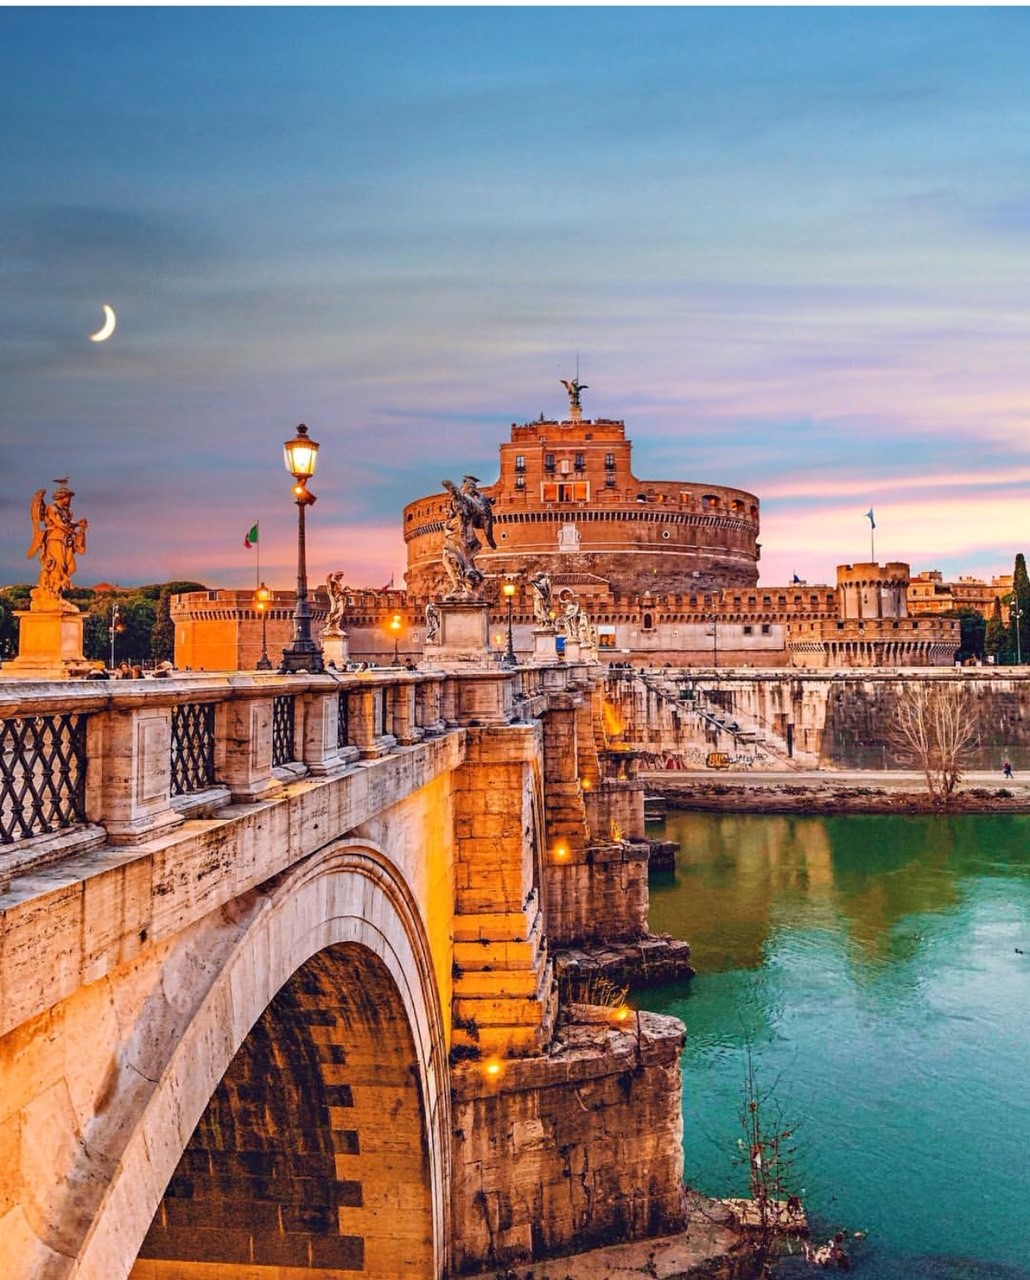 Castel Sant' Angelo at sunset